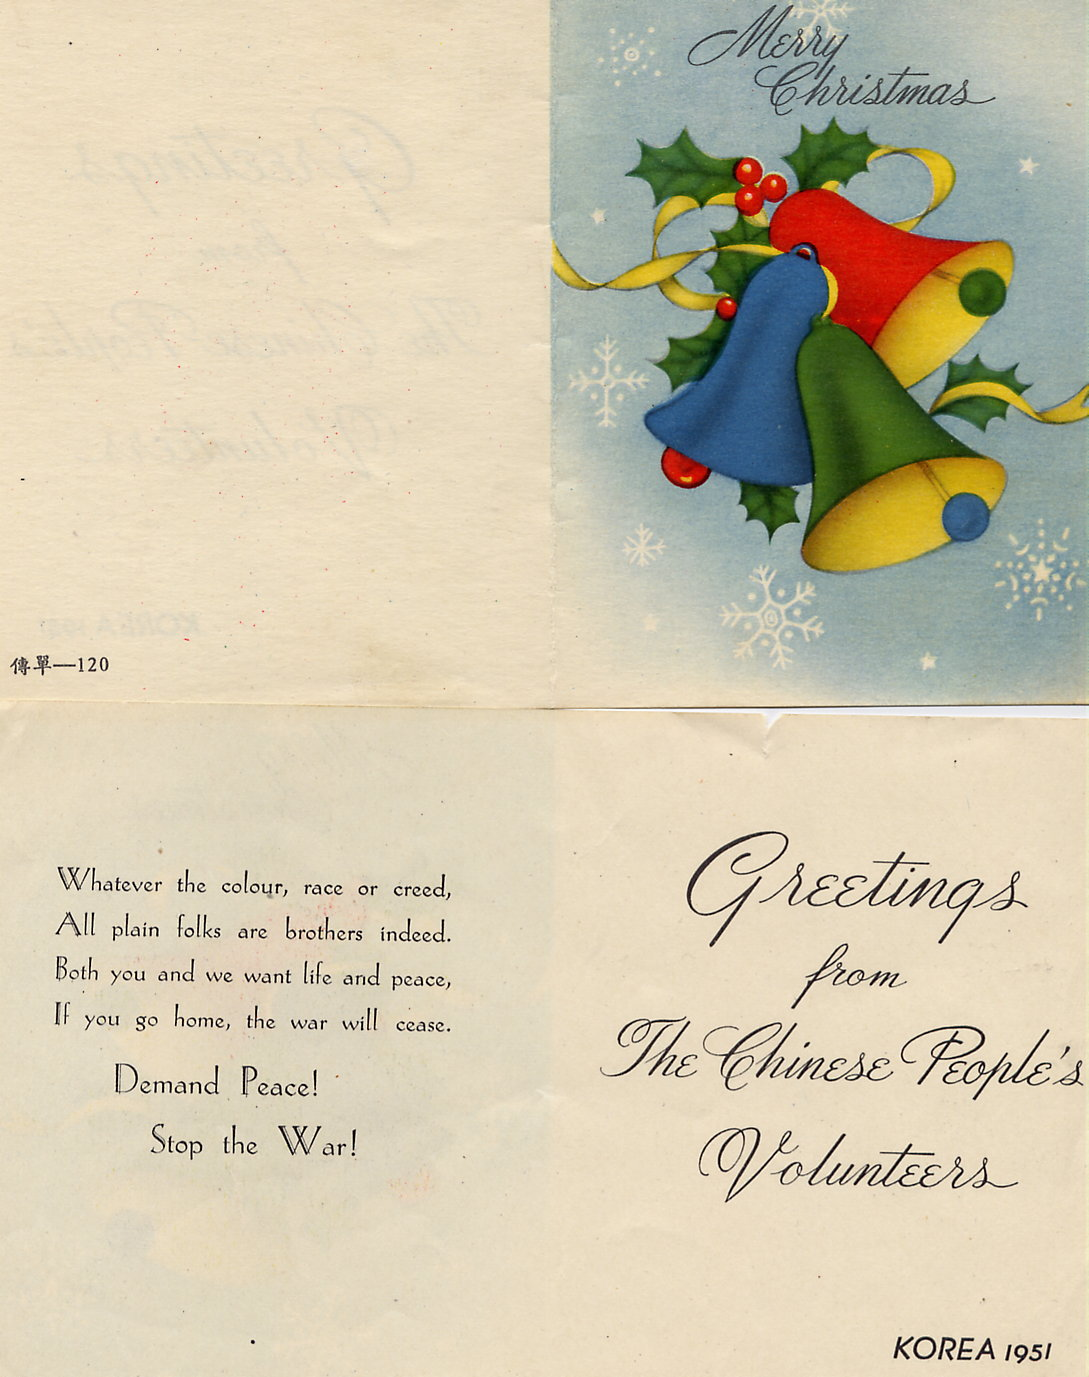 12_North Korean Christmas Card Propaganda 1951